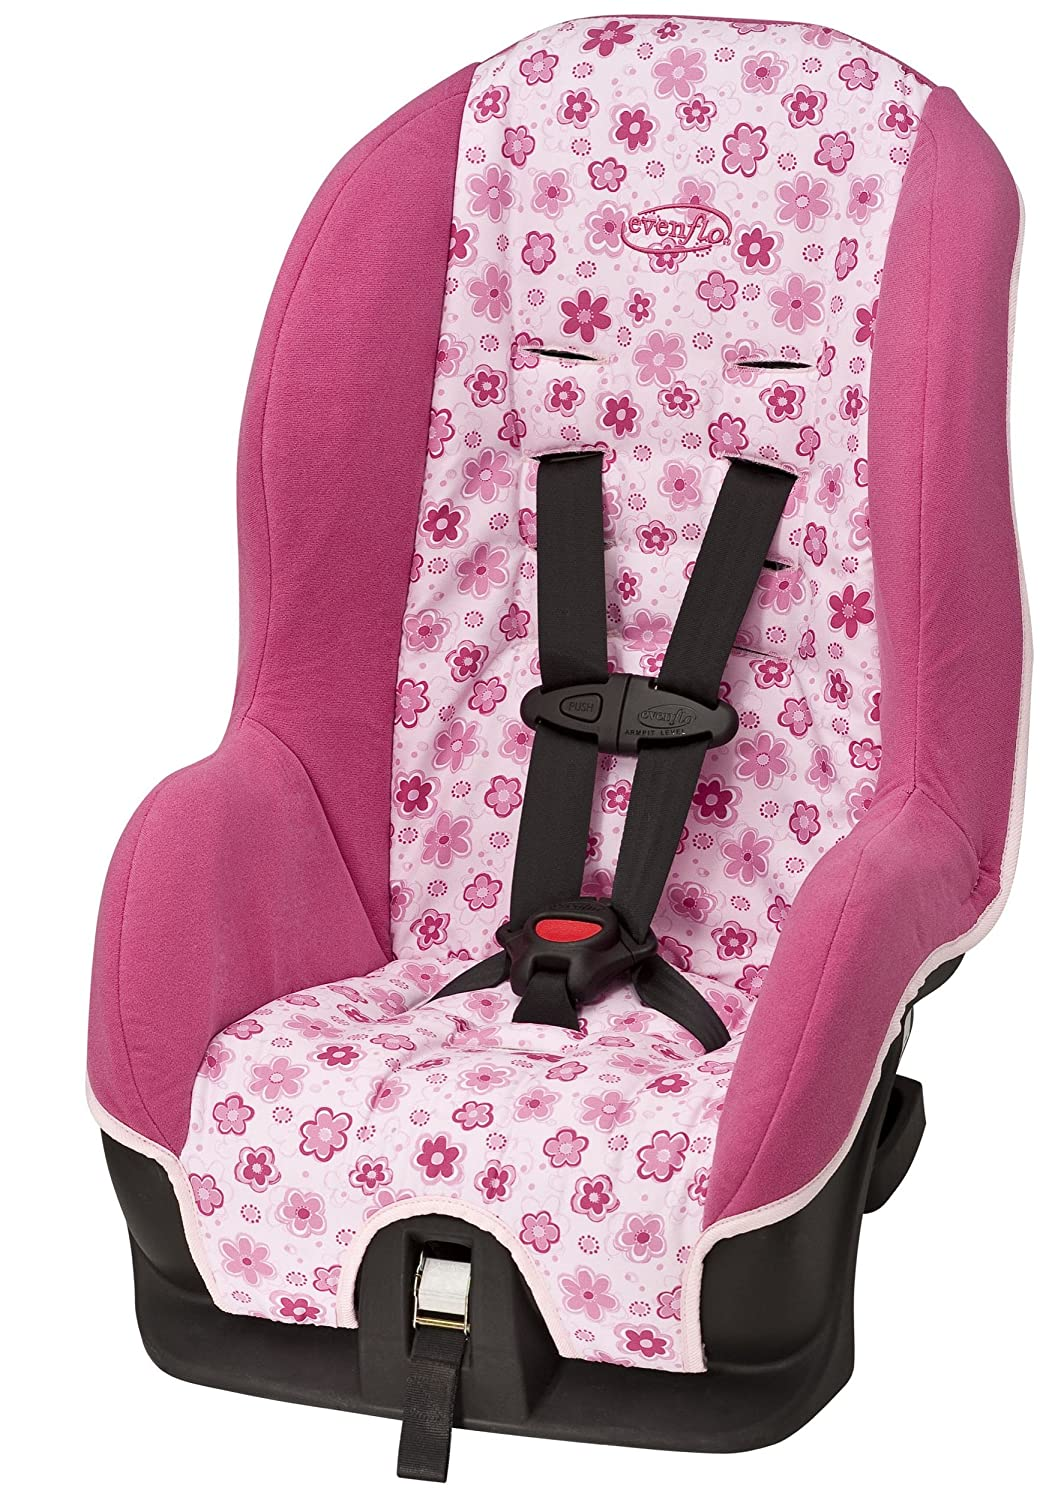 Evenflo Car Seat Covers - Velcromag